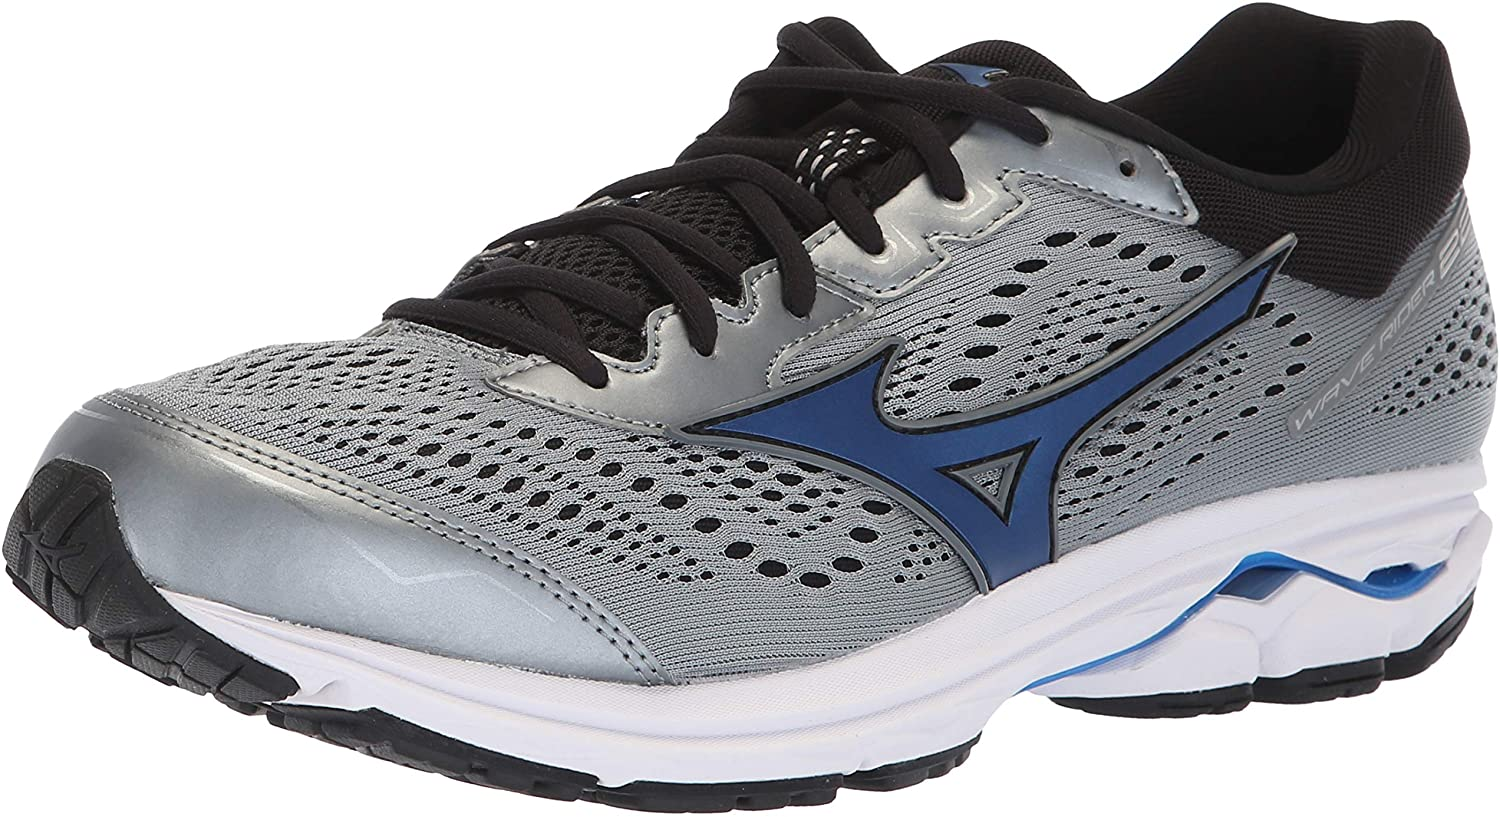 Men's Mizuno Wave Rider 22